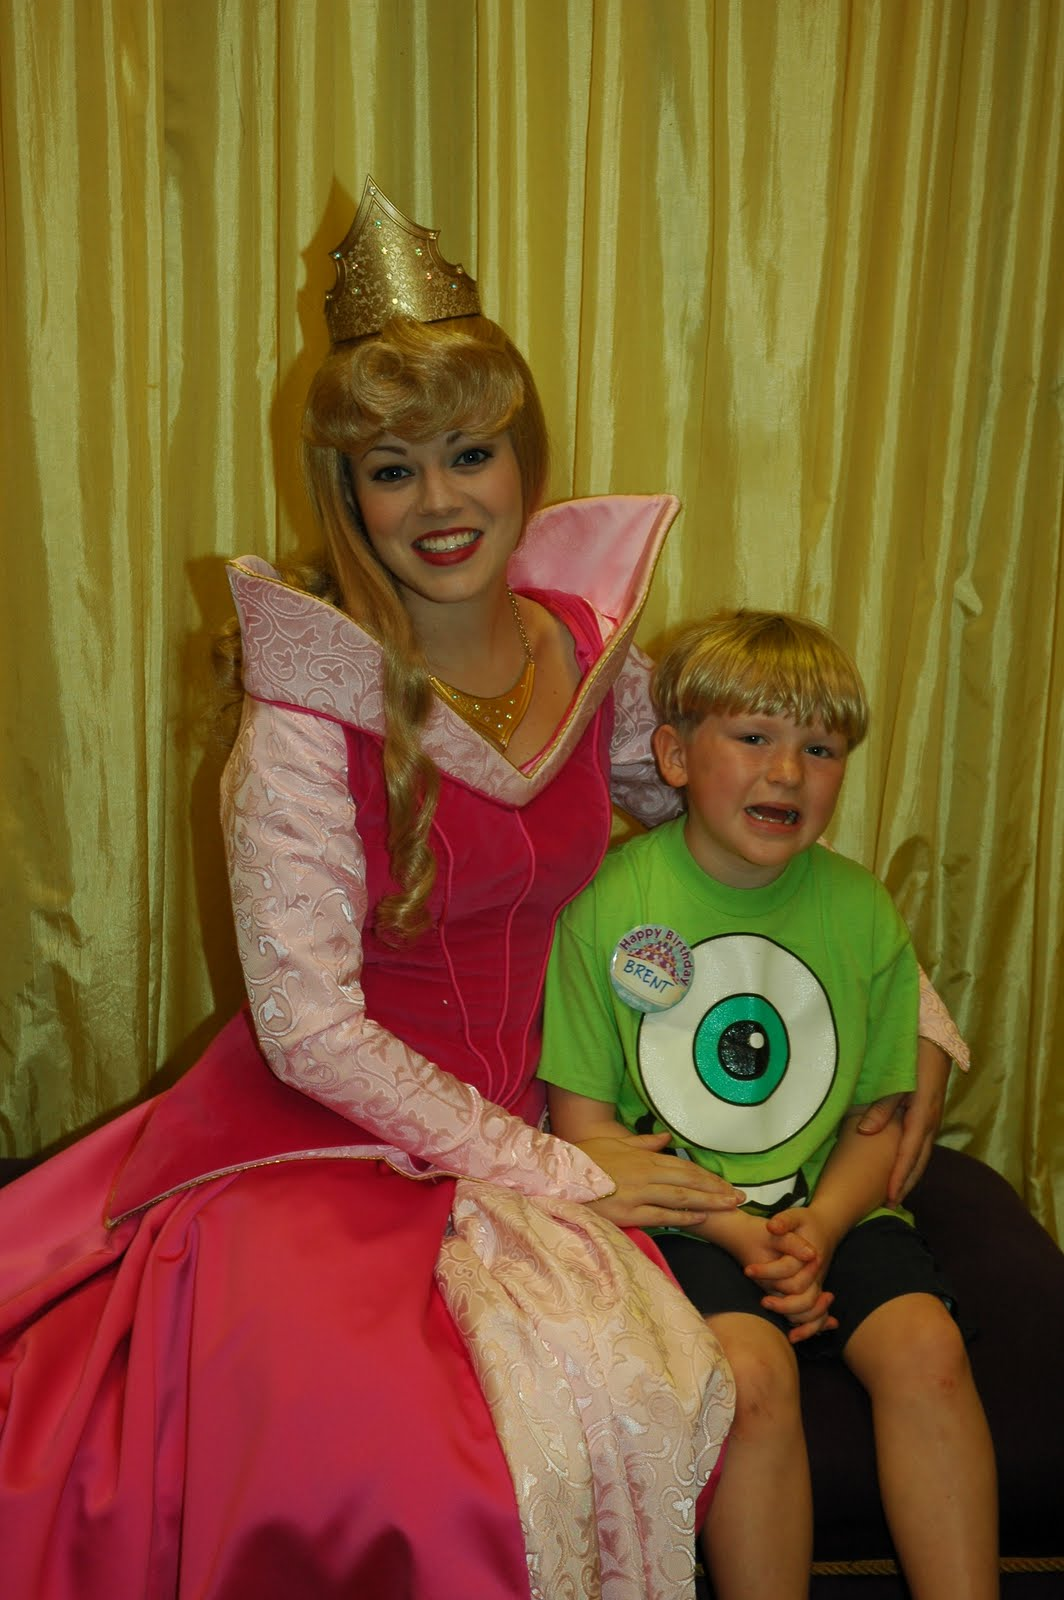 Williams family disney princesses at toontown hall of fame we have also seen snow white at the royal meet and greet m4hsunfo